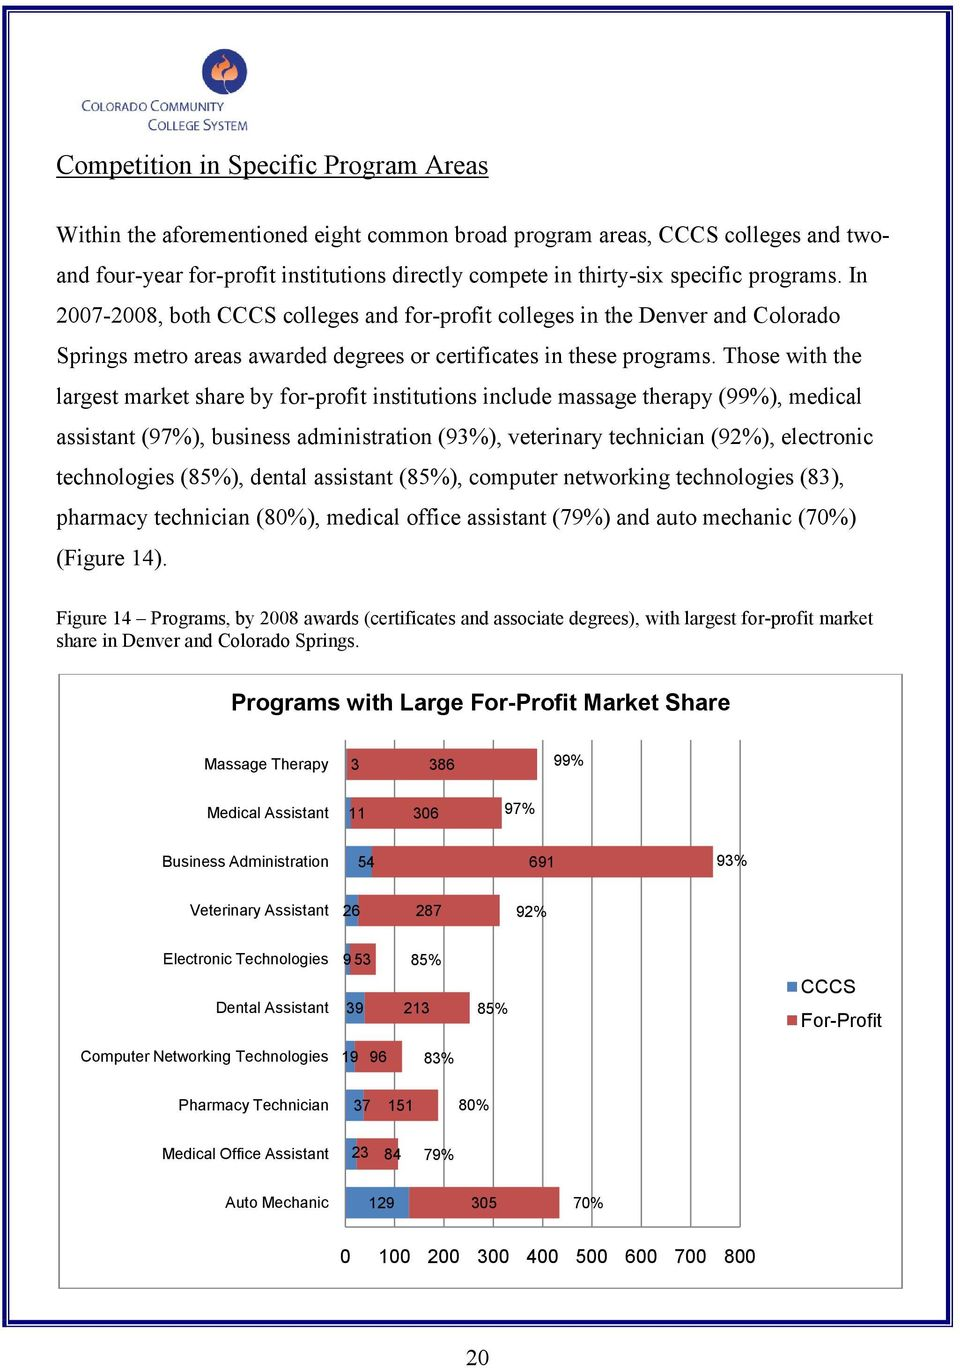 Those with the largest market share by for-profit institutions include massage therapy (99%), medical assistant (97%), business administration (93%), veterinary technician (92%), electronic